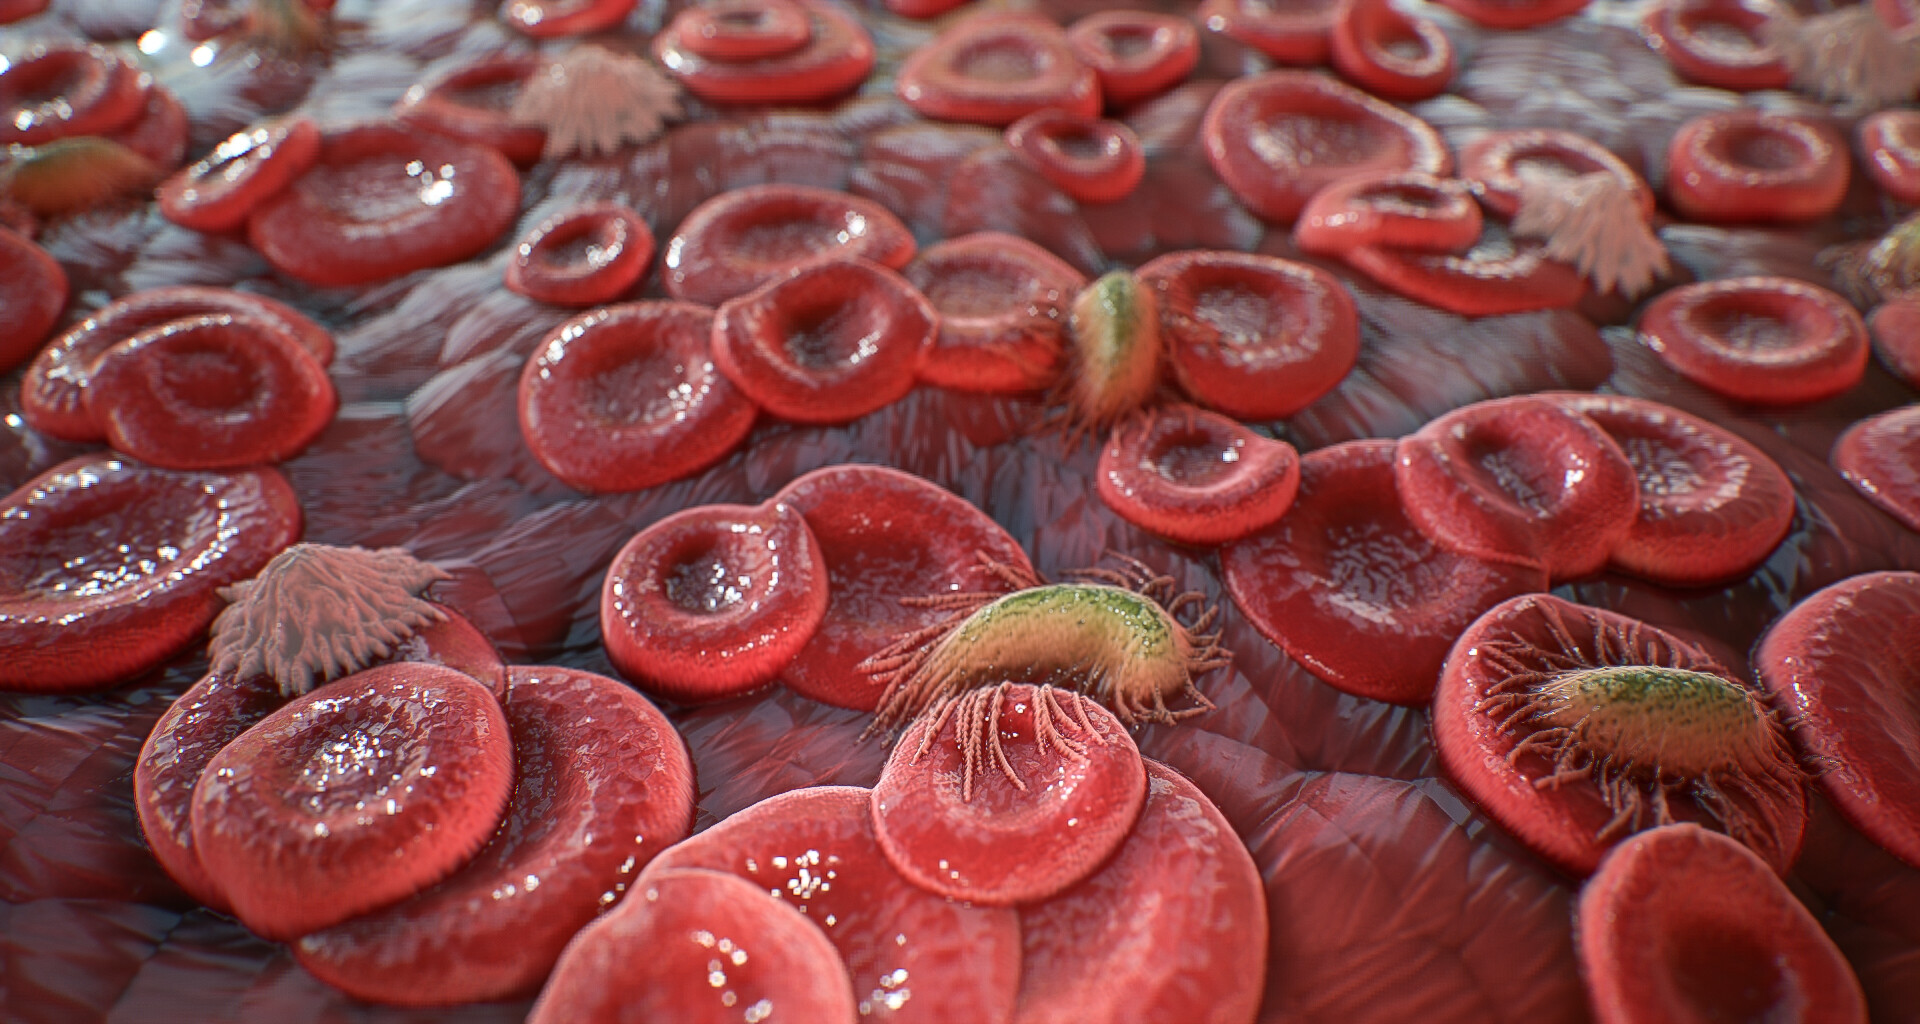 Blood cells Material on a plane